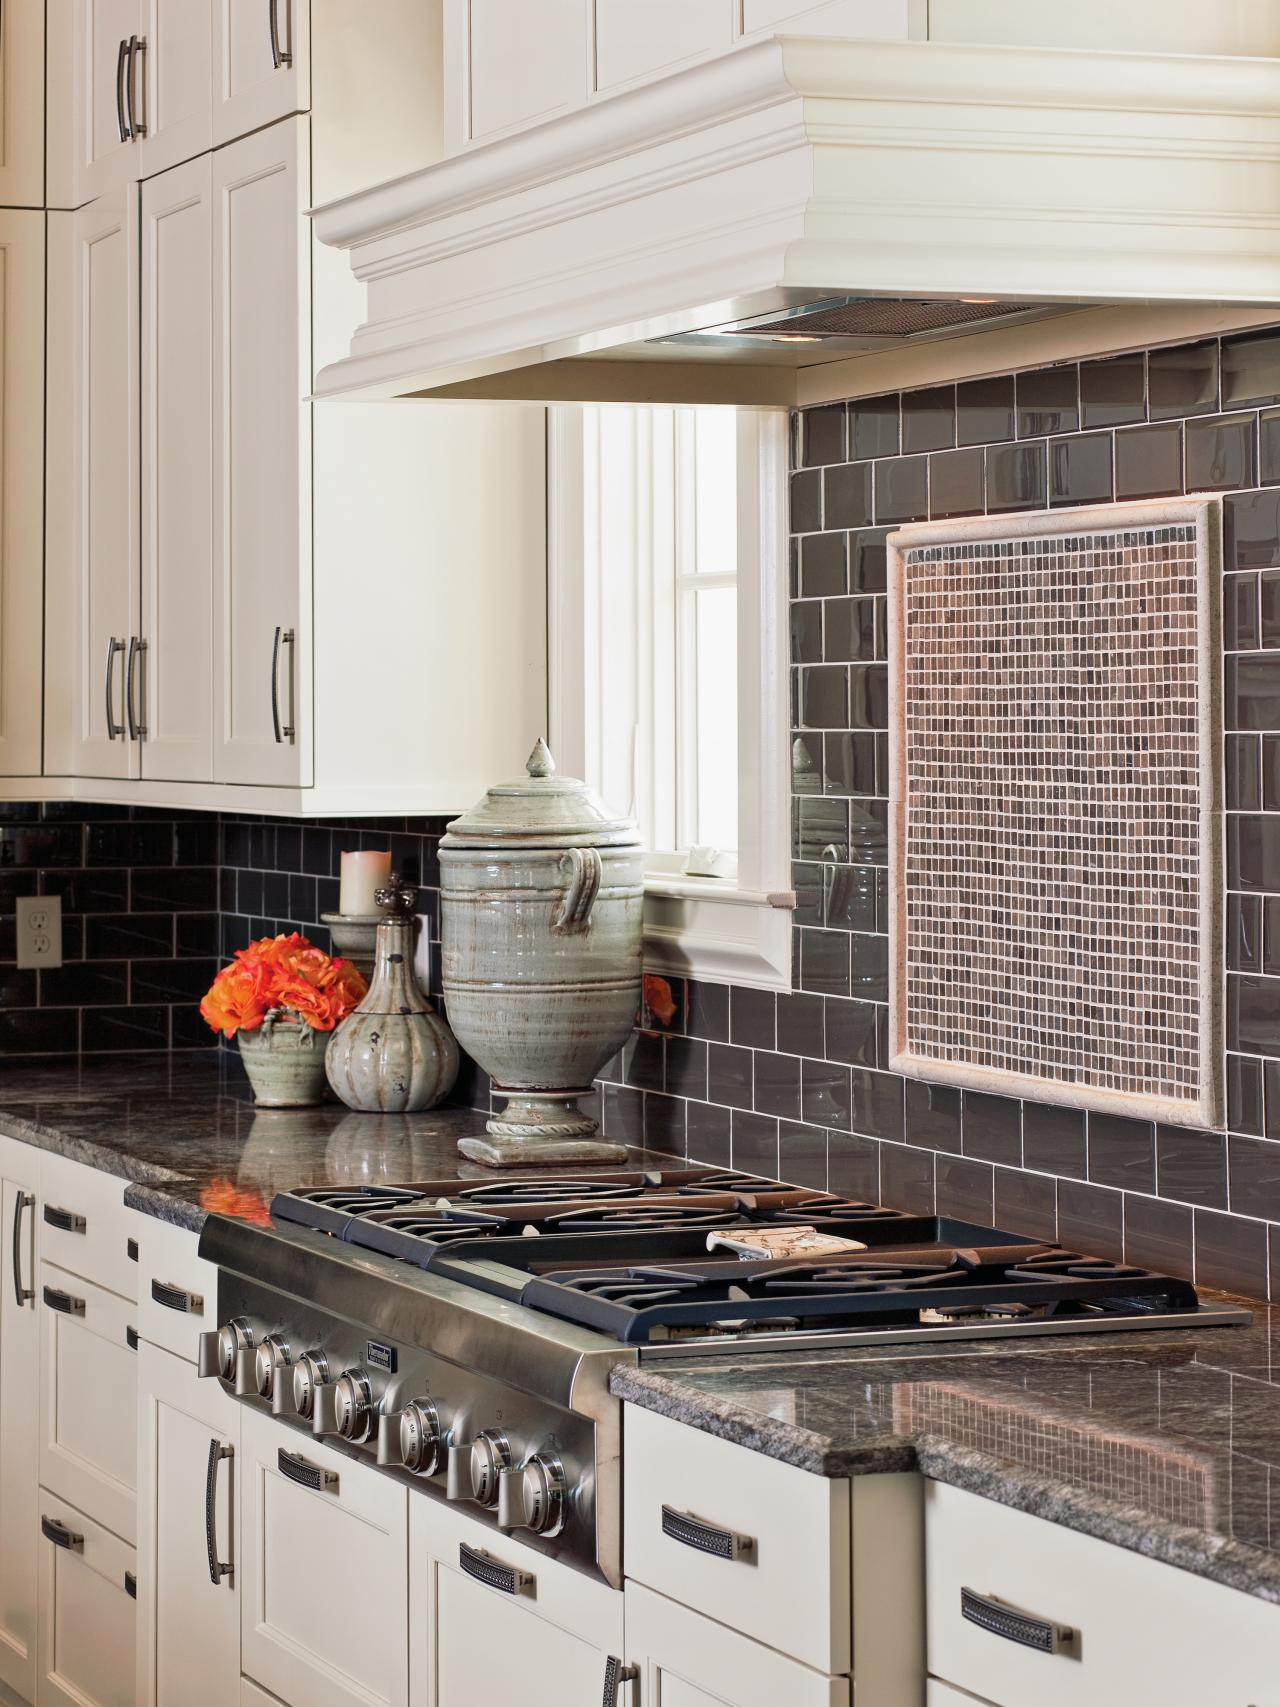 Kitchen Backsplash Design Glass Backsplash Ideas & Tips From Hgtv